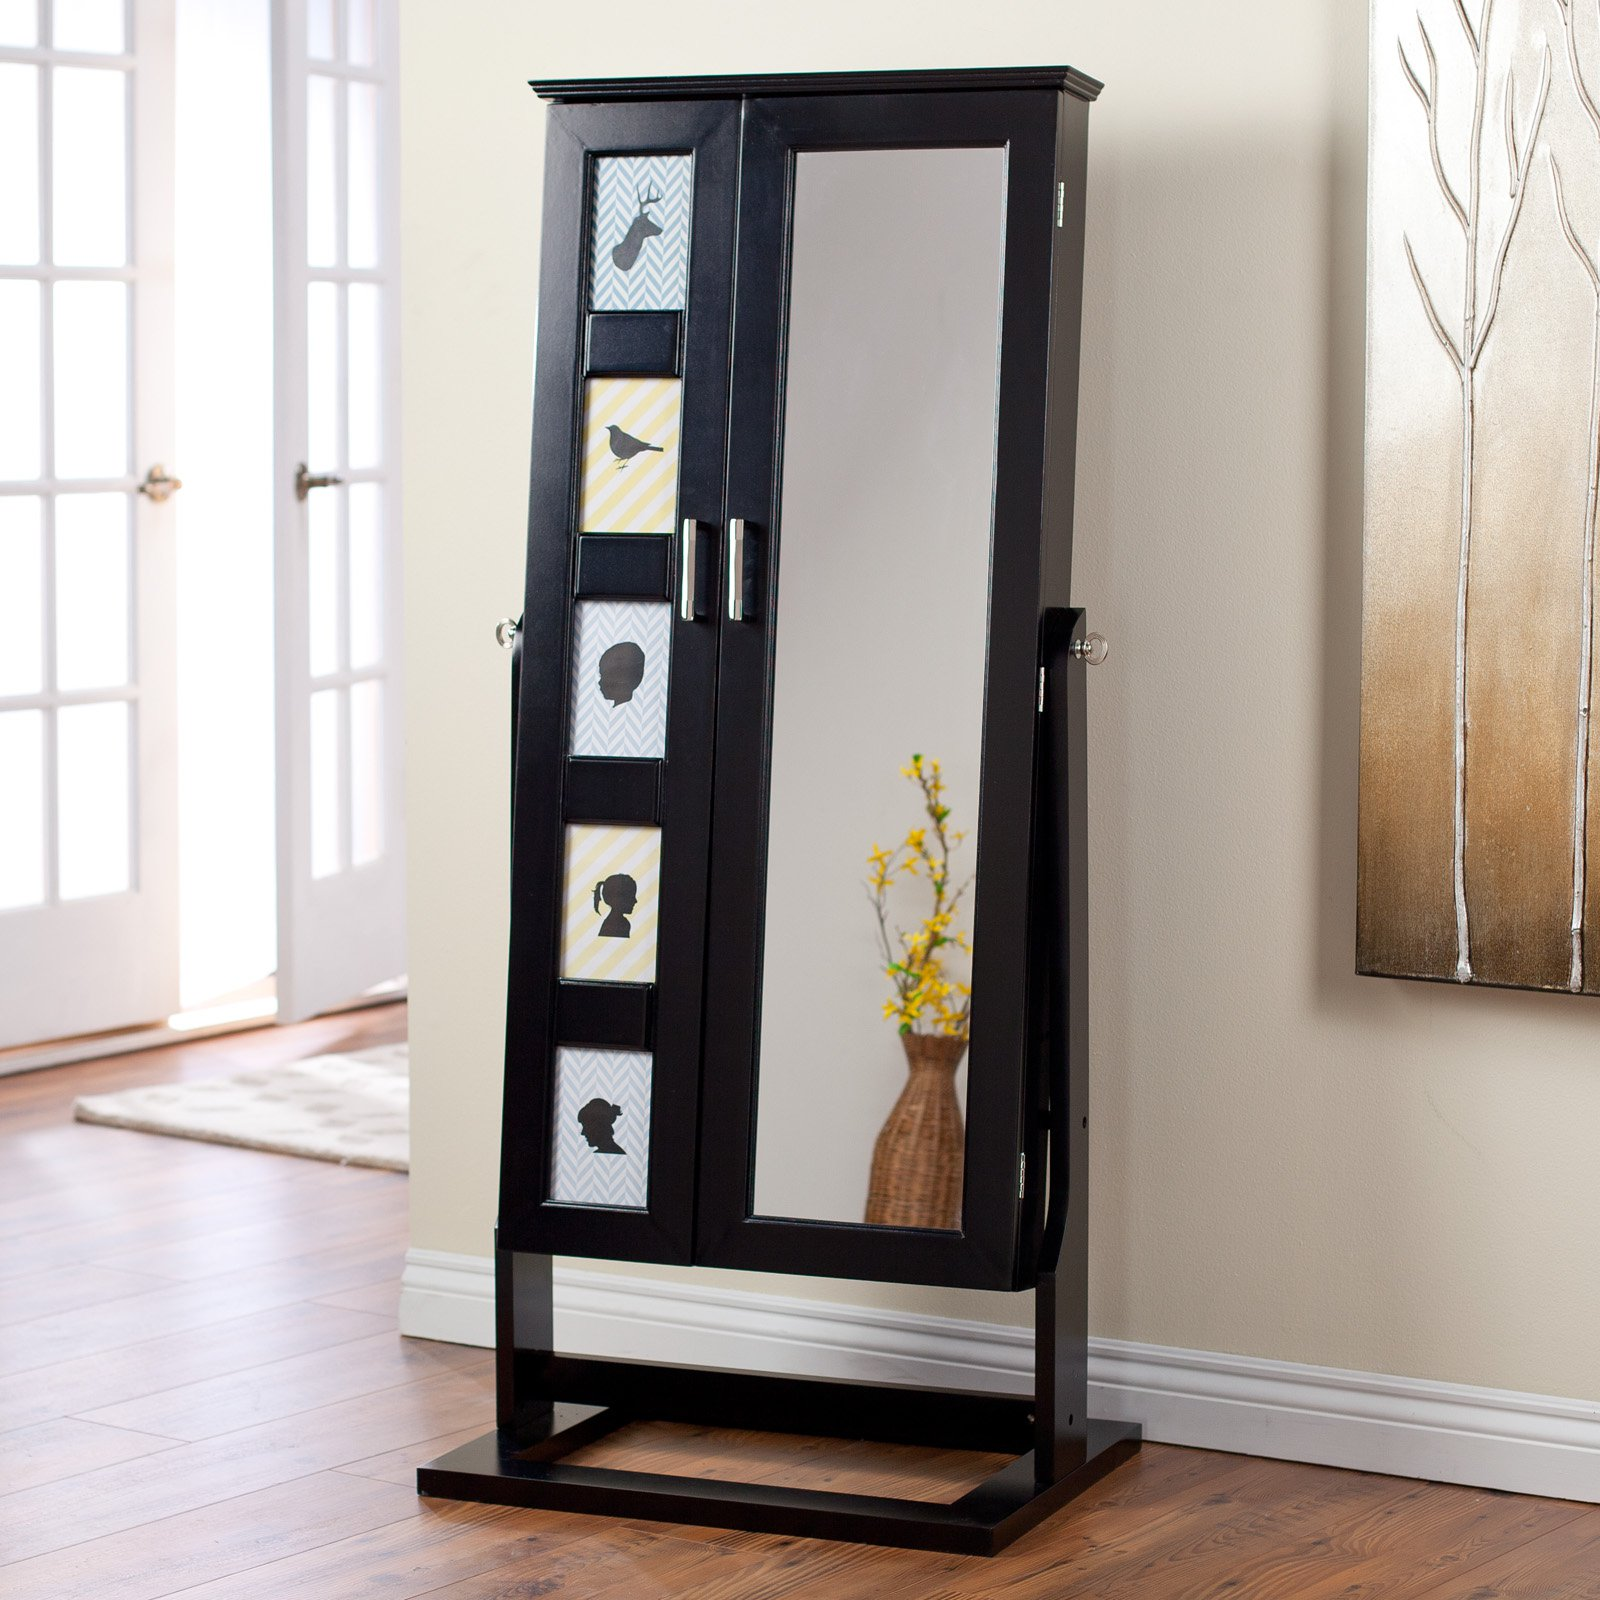 Belham Living Picture Frames Jewelry Armoire Cheval Mirror High Gloss Black by East West Basics (HK) Ltd